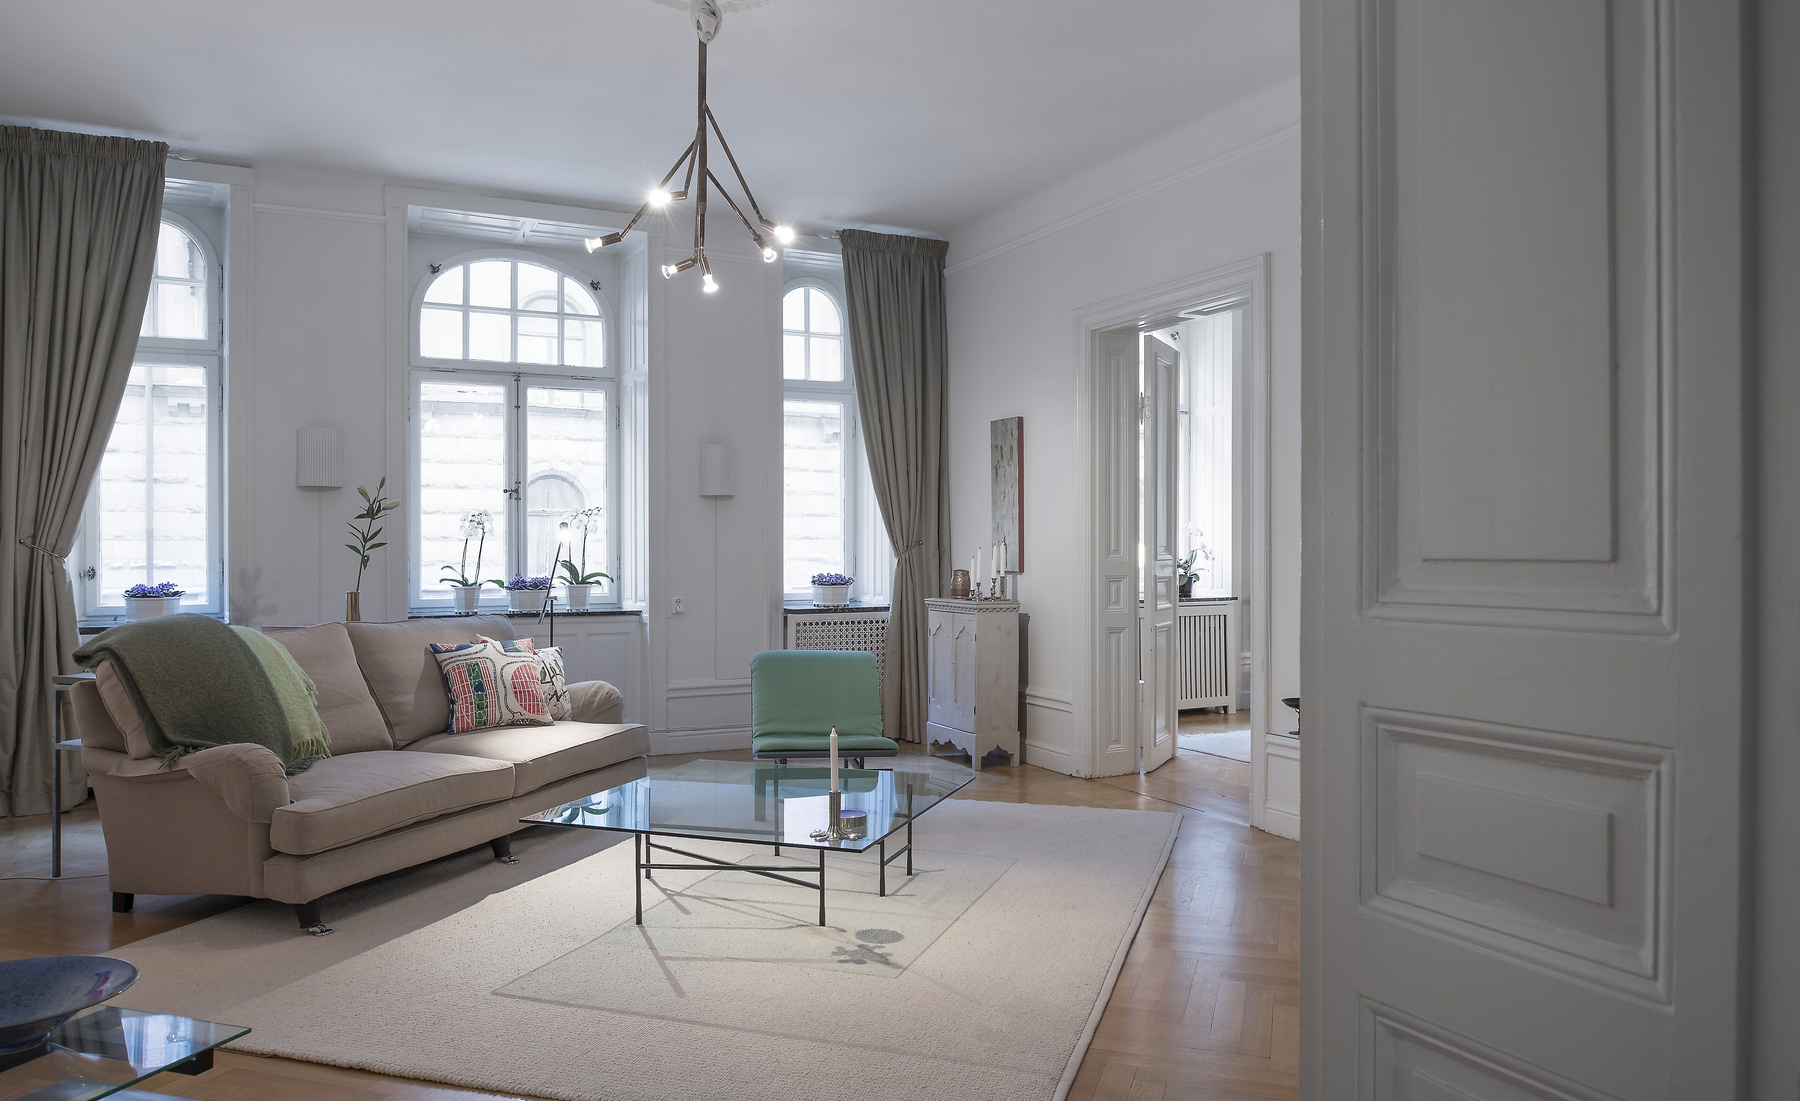 Appartamento per Vendita alle ore Beautiful turn of the century apartment Stockholm, Stoccolma, Svezia